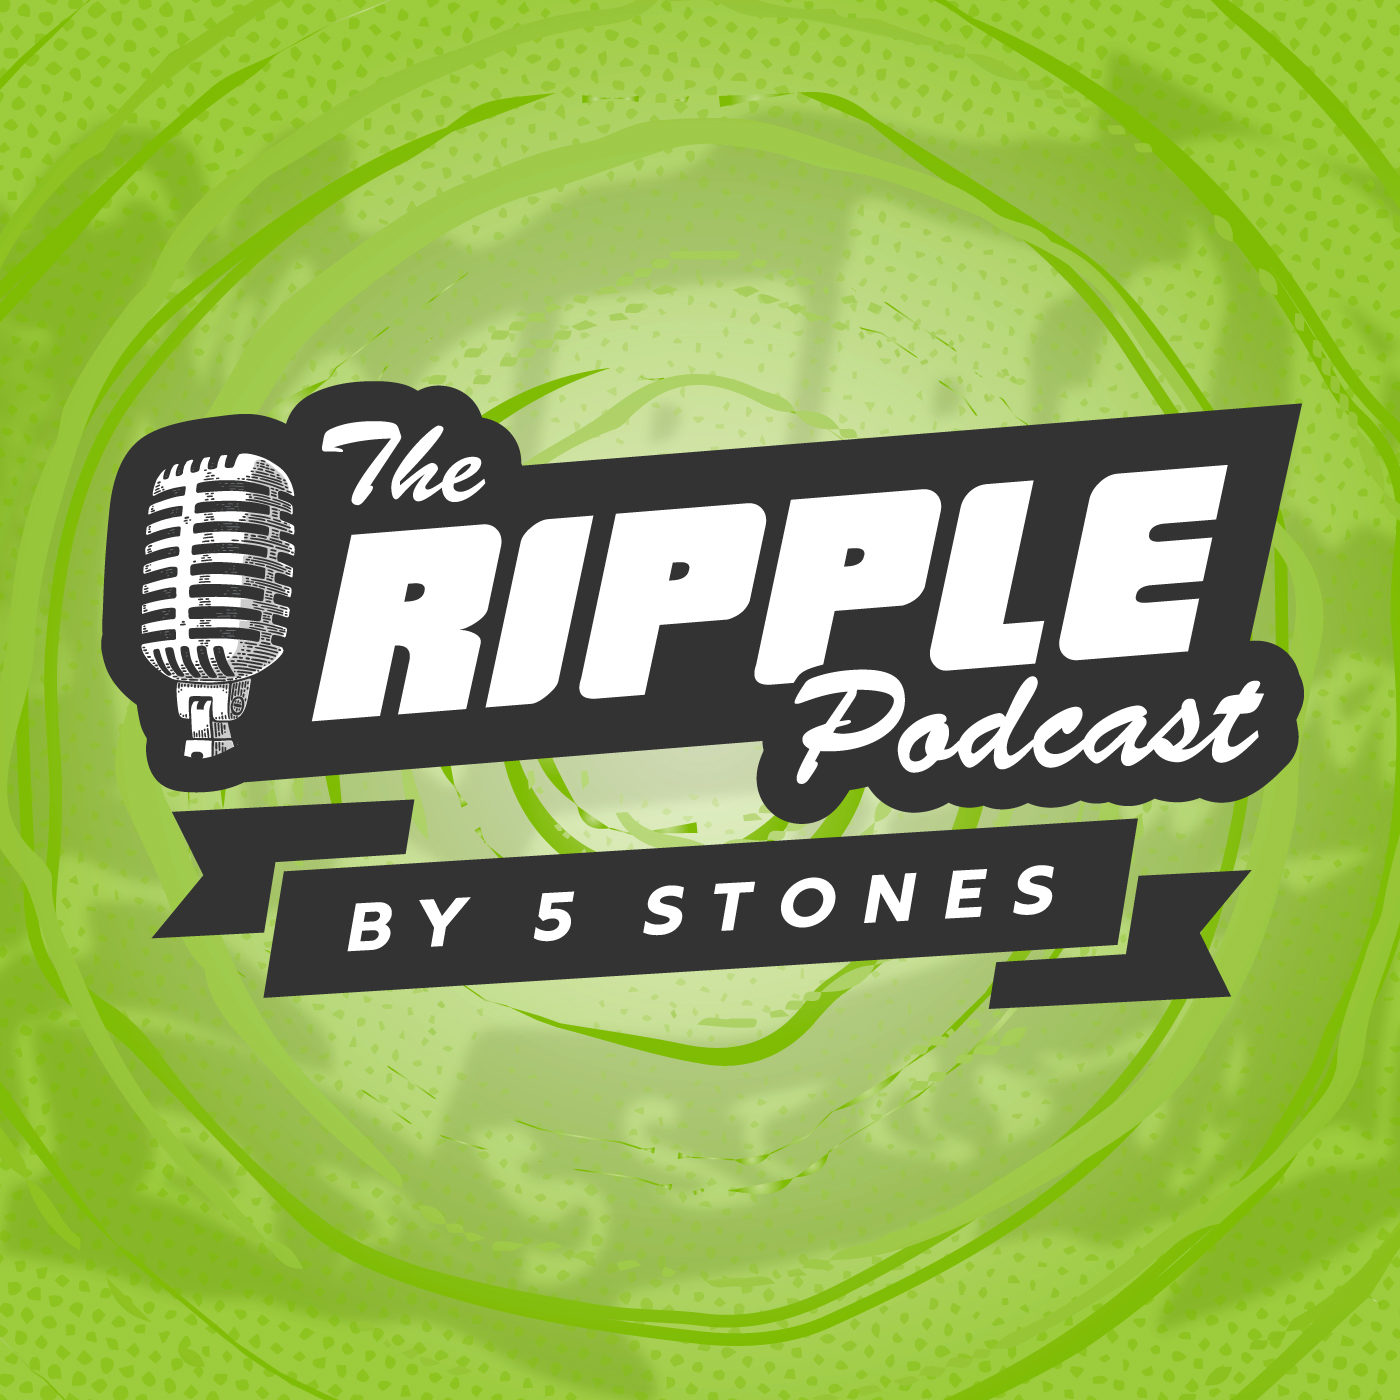 The Ripple Podcast by 5 Stones show art